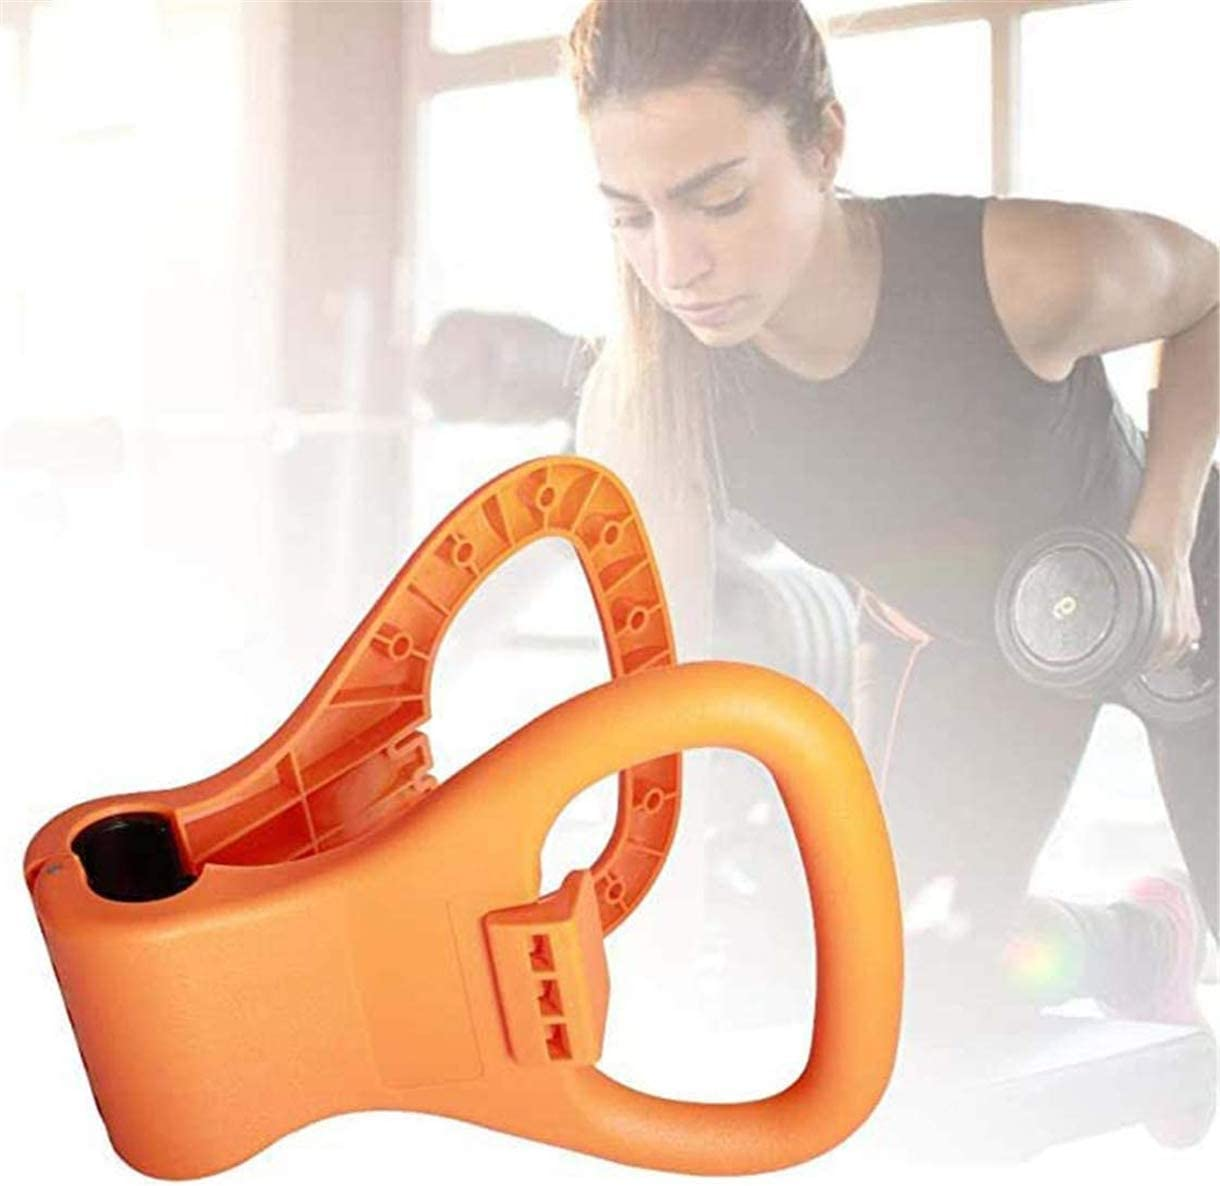 KISSOURBABY Kettlebell Grip,Adjustable Portable Weight Travel Workout Equipment Gear for Gym Weights Bag Weightlifting Bodybuilding